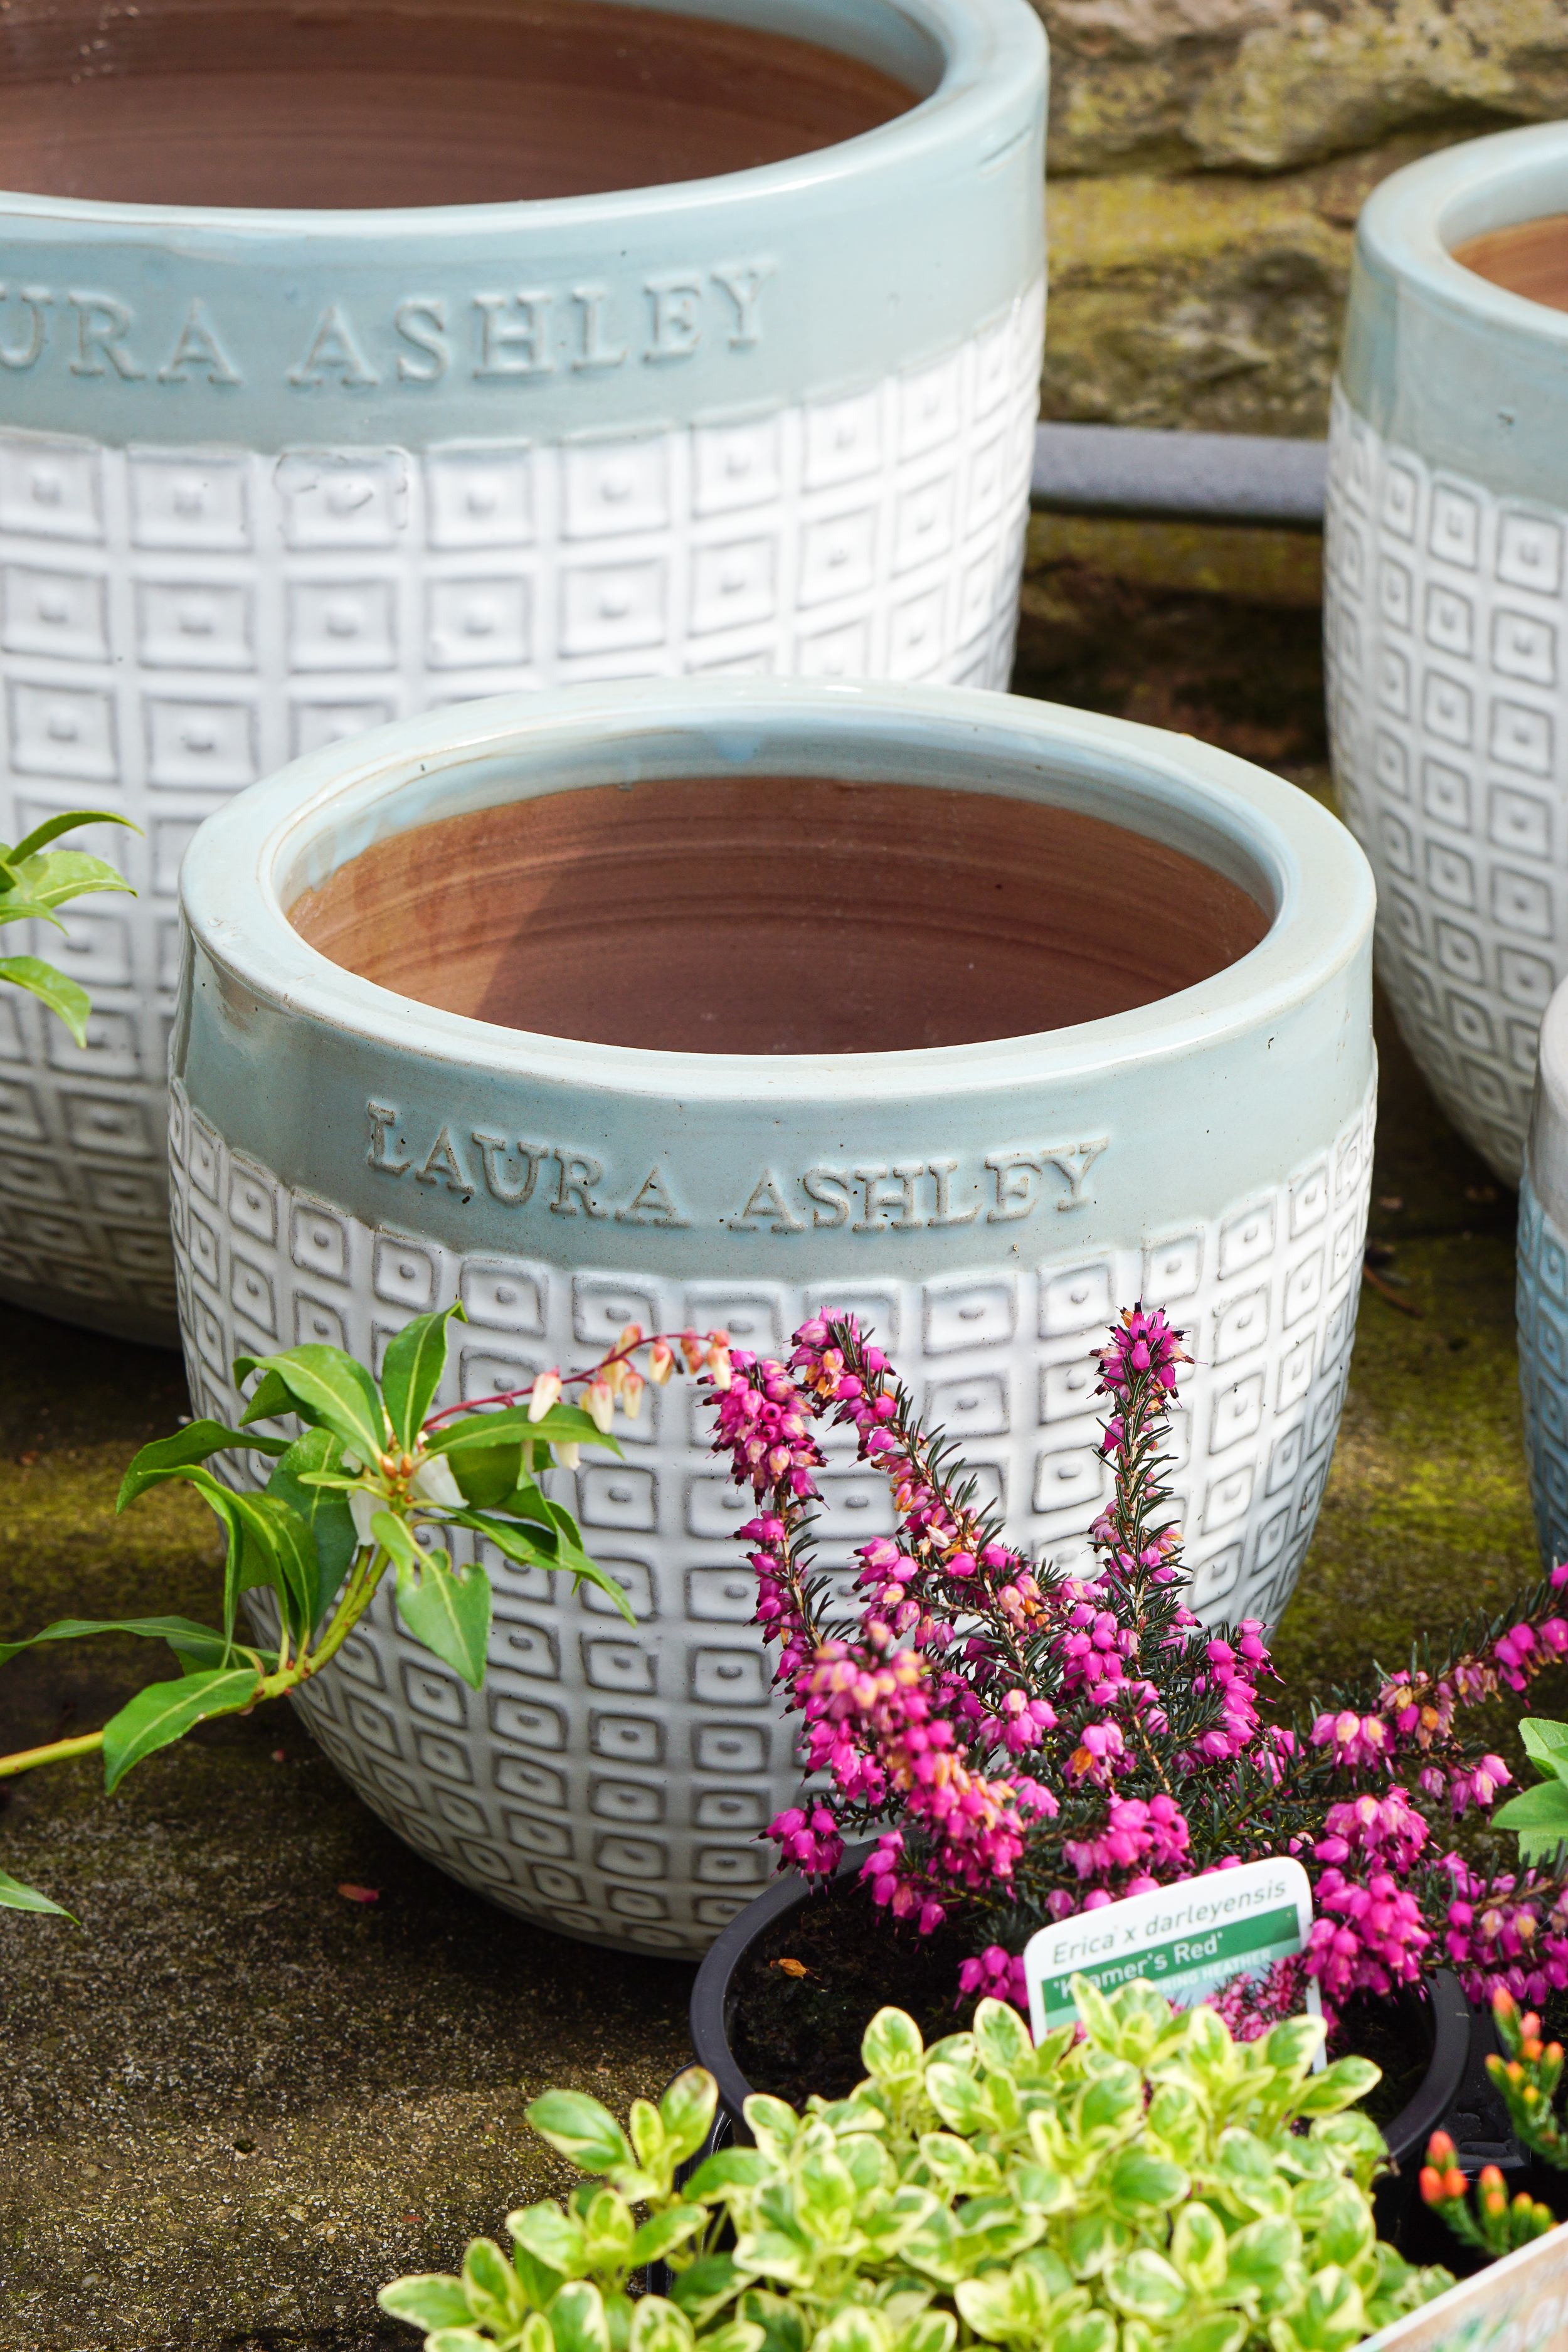 Planting in pots